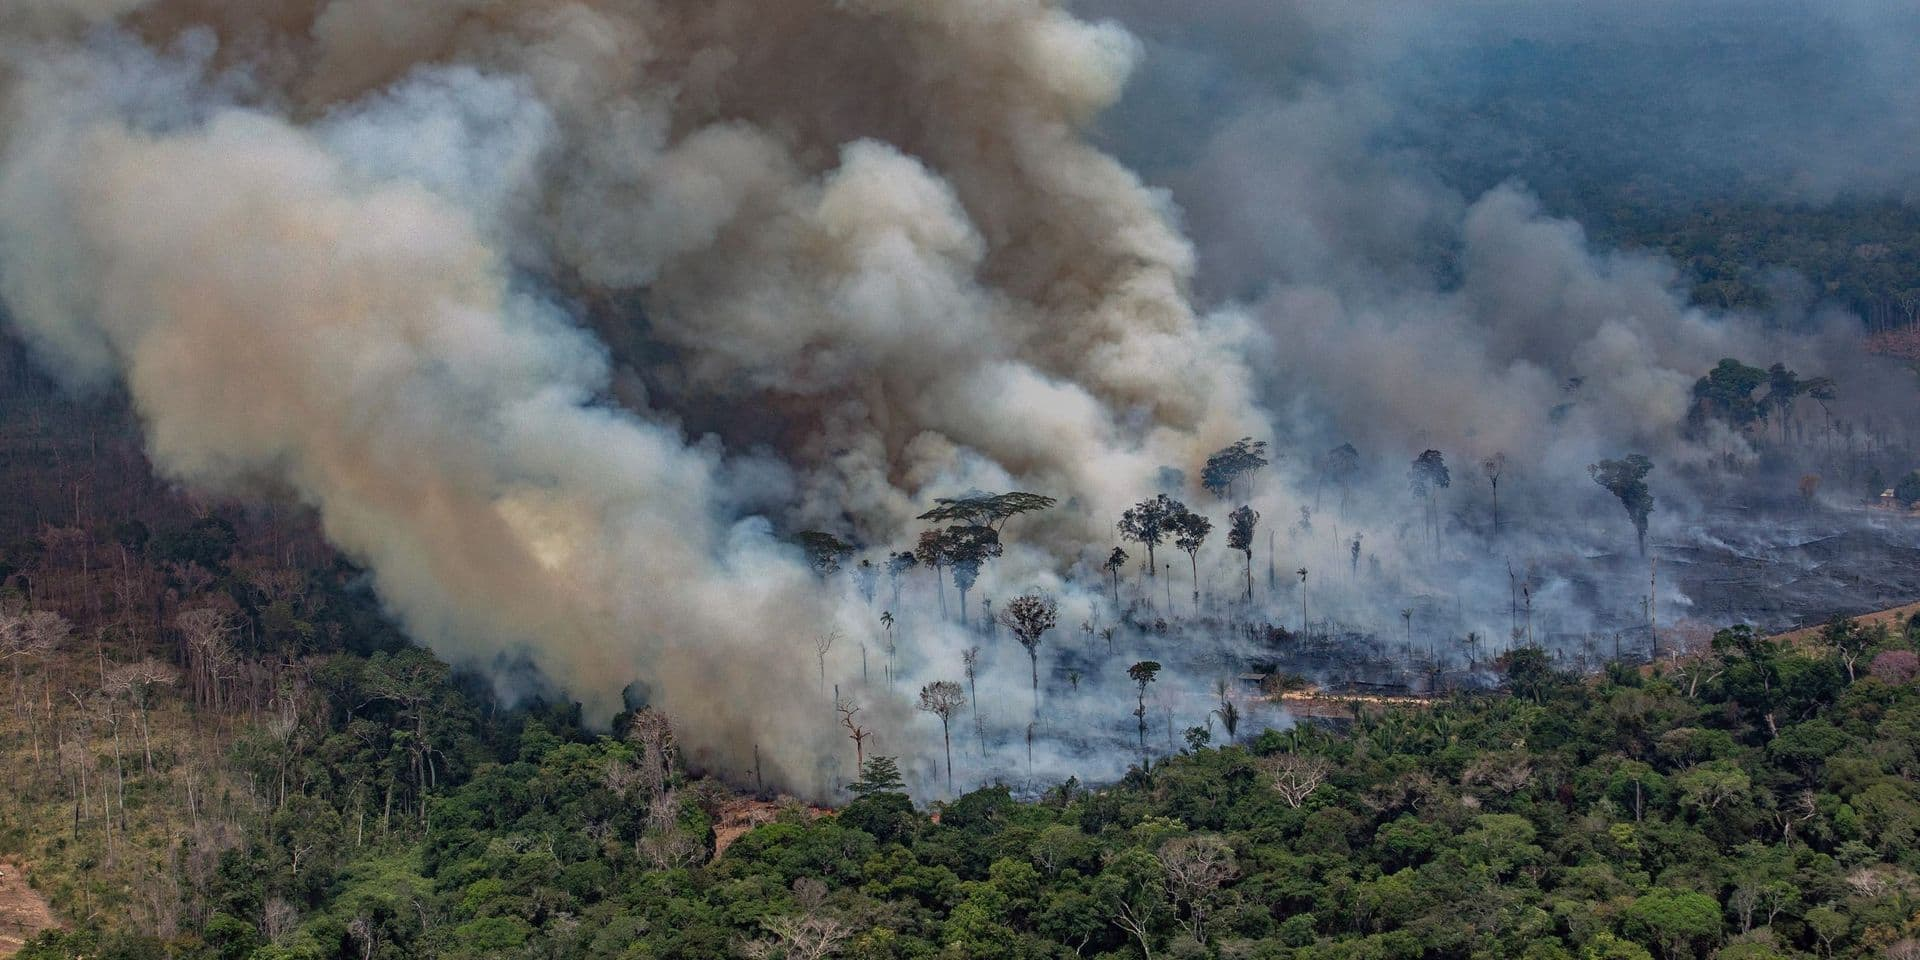 """TOPSHOT - Handout aerial released by Greenpeace showing smoke billowing from forest fires in the municipality of Candeias do Jamari, close to Porto Velho in Rondonia State, in the Amazon basin in northwestern Brazil, on August 24, 2019. - Brazil on August 25 deployed two Hercules C-130 aircraft to douse fires devouring parts of the Amazon rainforest. The latest official figures show 79,513 forest fires have been recorded in the country this year, the highest number of any year since 2013. More than half of those are in the massive Amazon basin. Experts say increased land clearing during the months-long dry season to make way for crops or grazing has aggravated the problem this year. (Photo by Victor MORIYAMA / GREENPEACE / AFP) / RESTRICTED TO EDITORIAL USE - MANDATORY CREDIT """"AFP PHOTO / GREENPEACE / VICTOR MORIYAMA"""" - NO MARKETING - NO ADVERTISING CAMPAIGNS - NO RESALE - NO ARCHIVE - IMAGE AVAILABLE FOR PUBLICATION AND DOWNLOAD UNTIL 09.09.2019 - DISTRIBUTED AS A SERVICE TO CLIENTS /"""